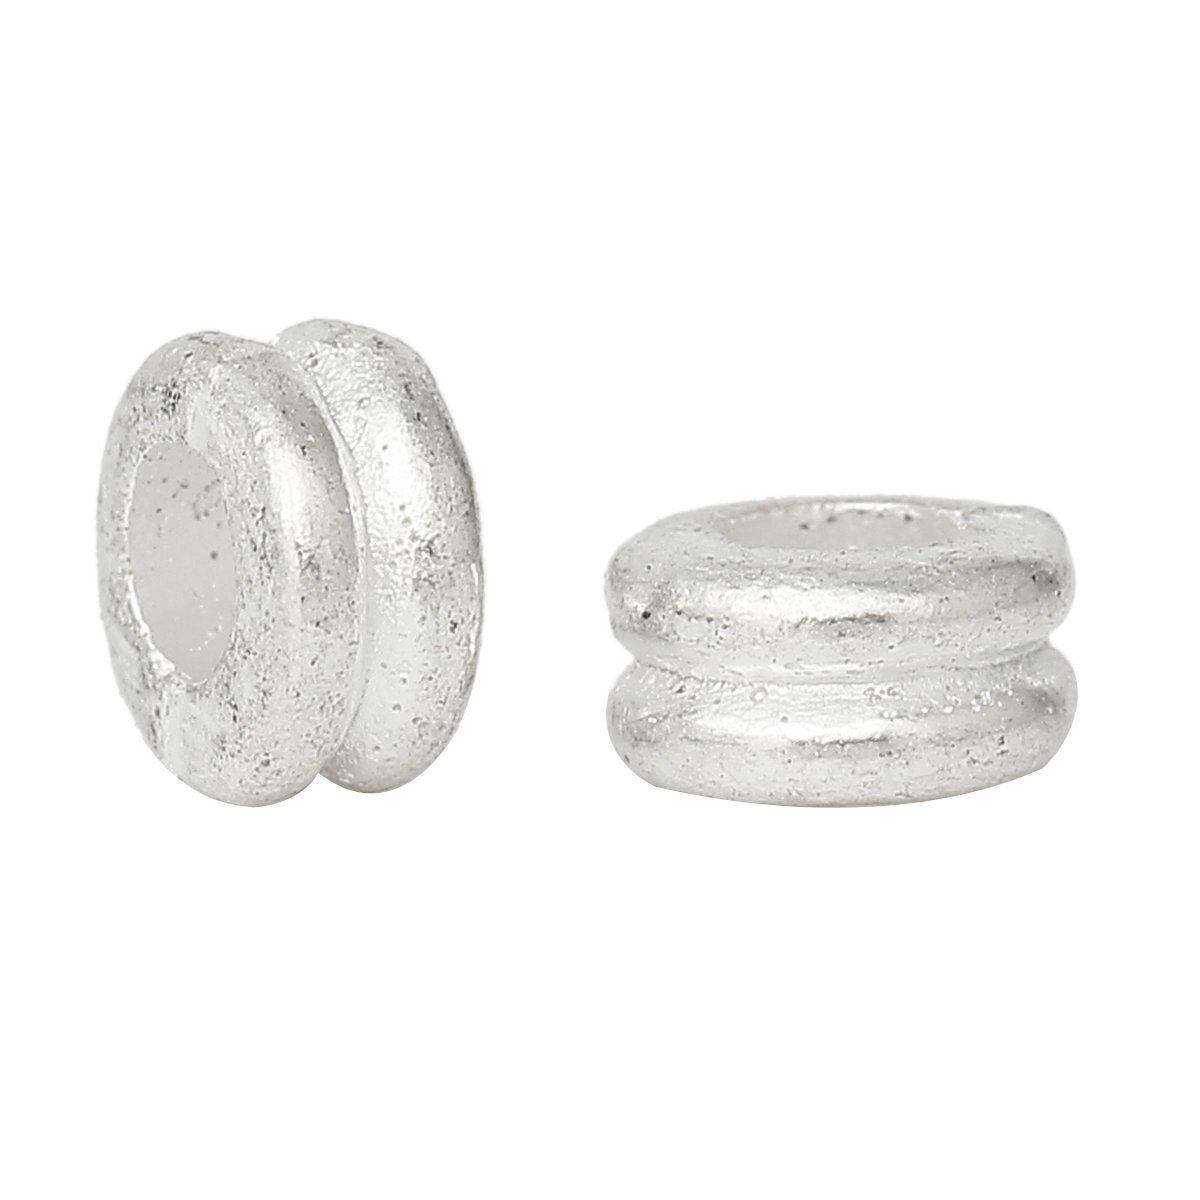 Silver Plated Slider Spacer Beads - 6.0mm x 3.0mm